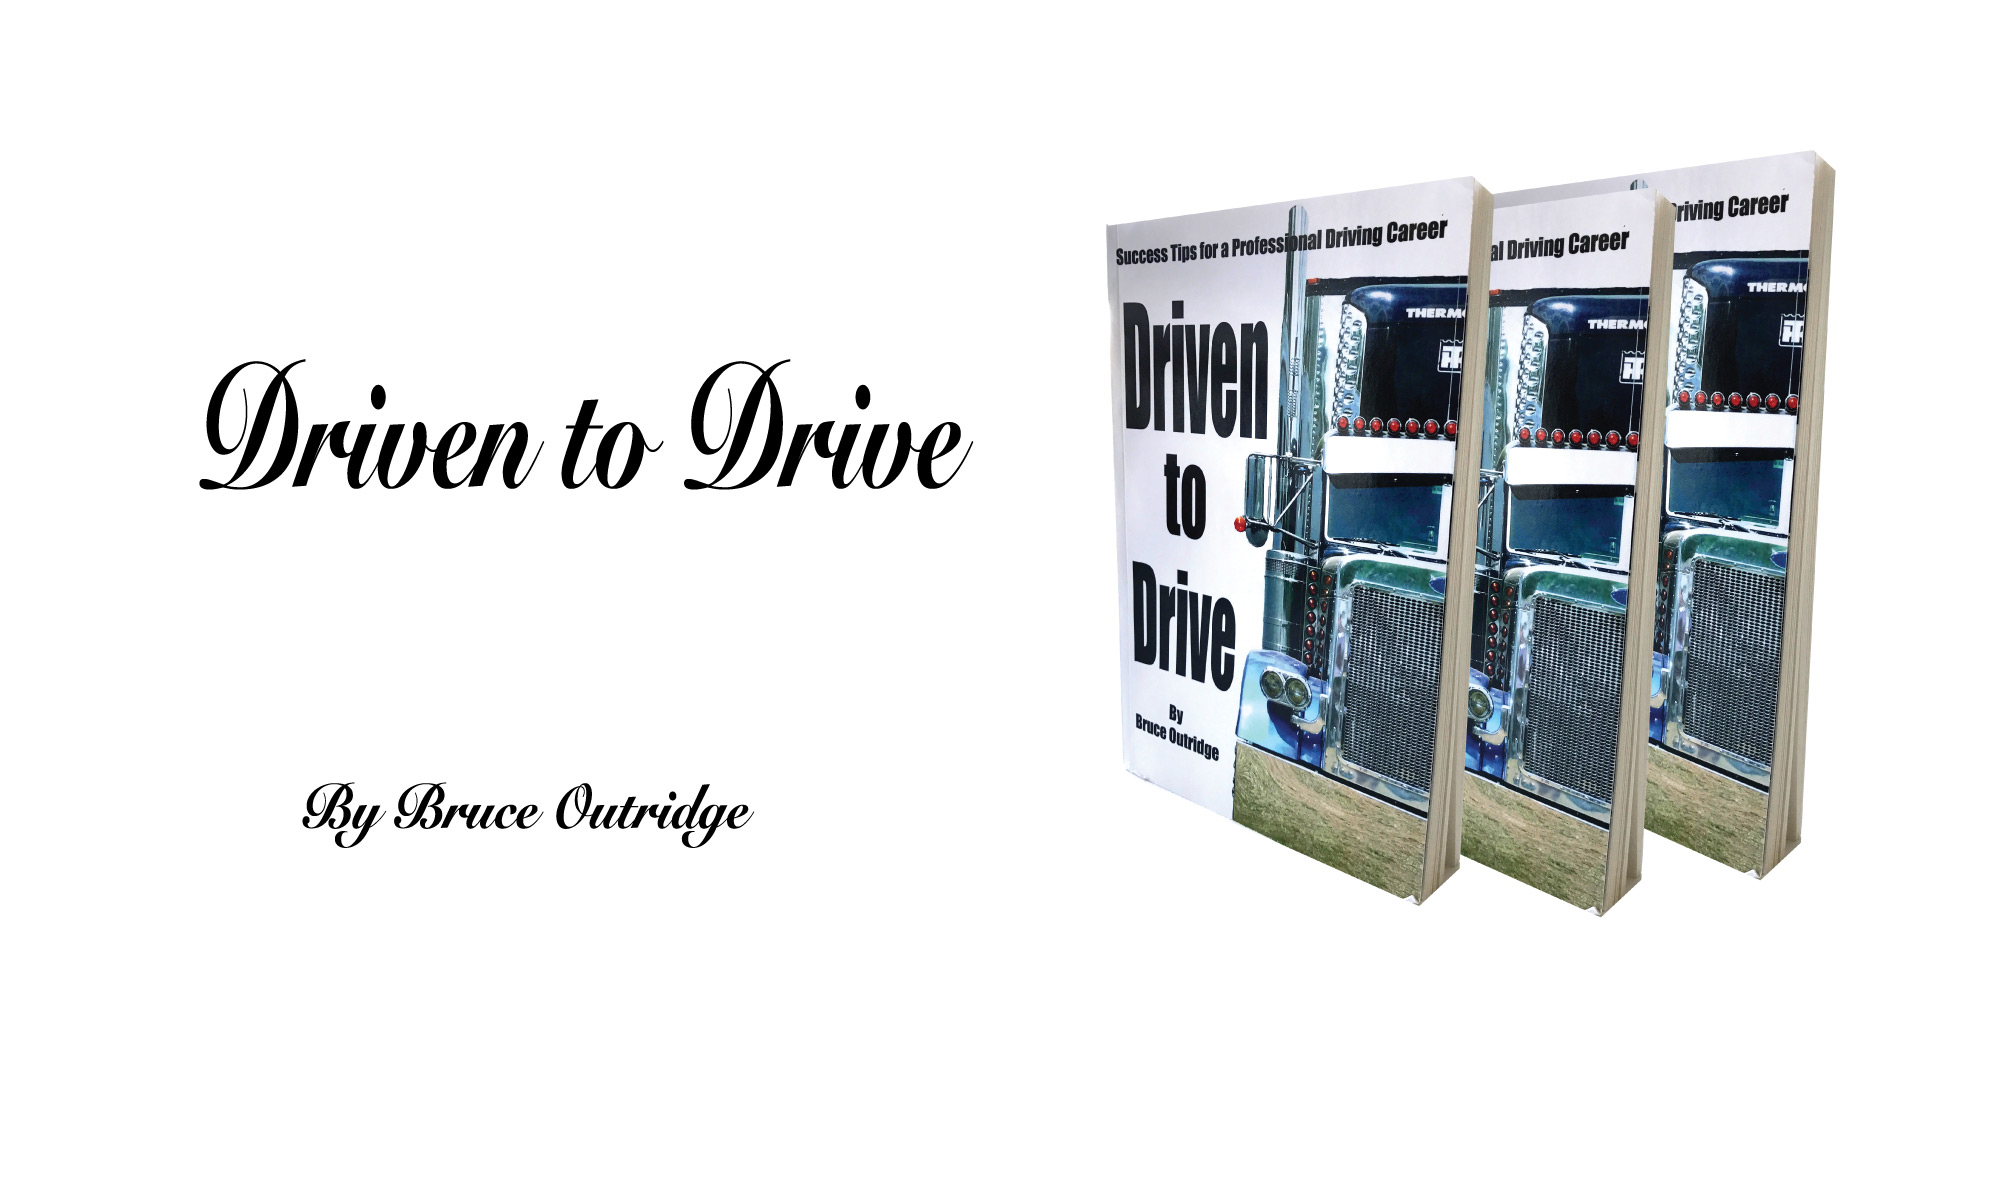 driven-to-drive-book-cover-image